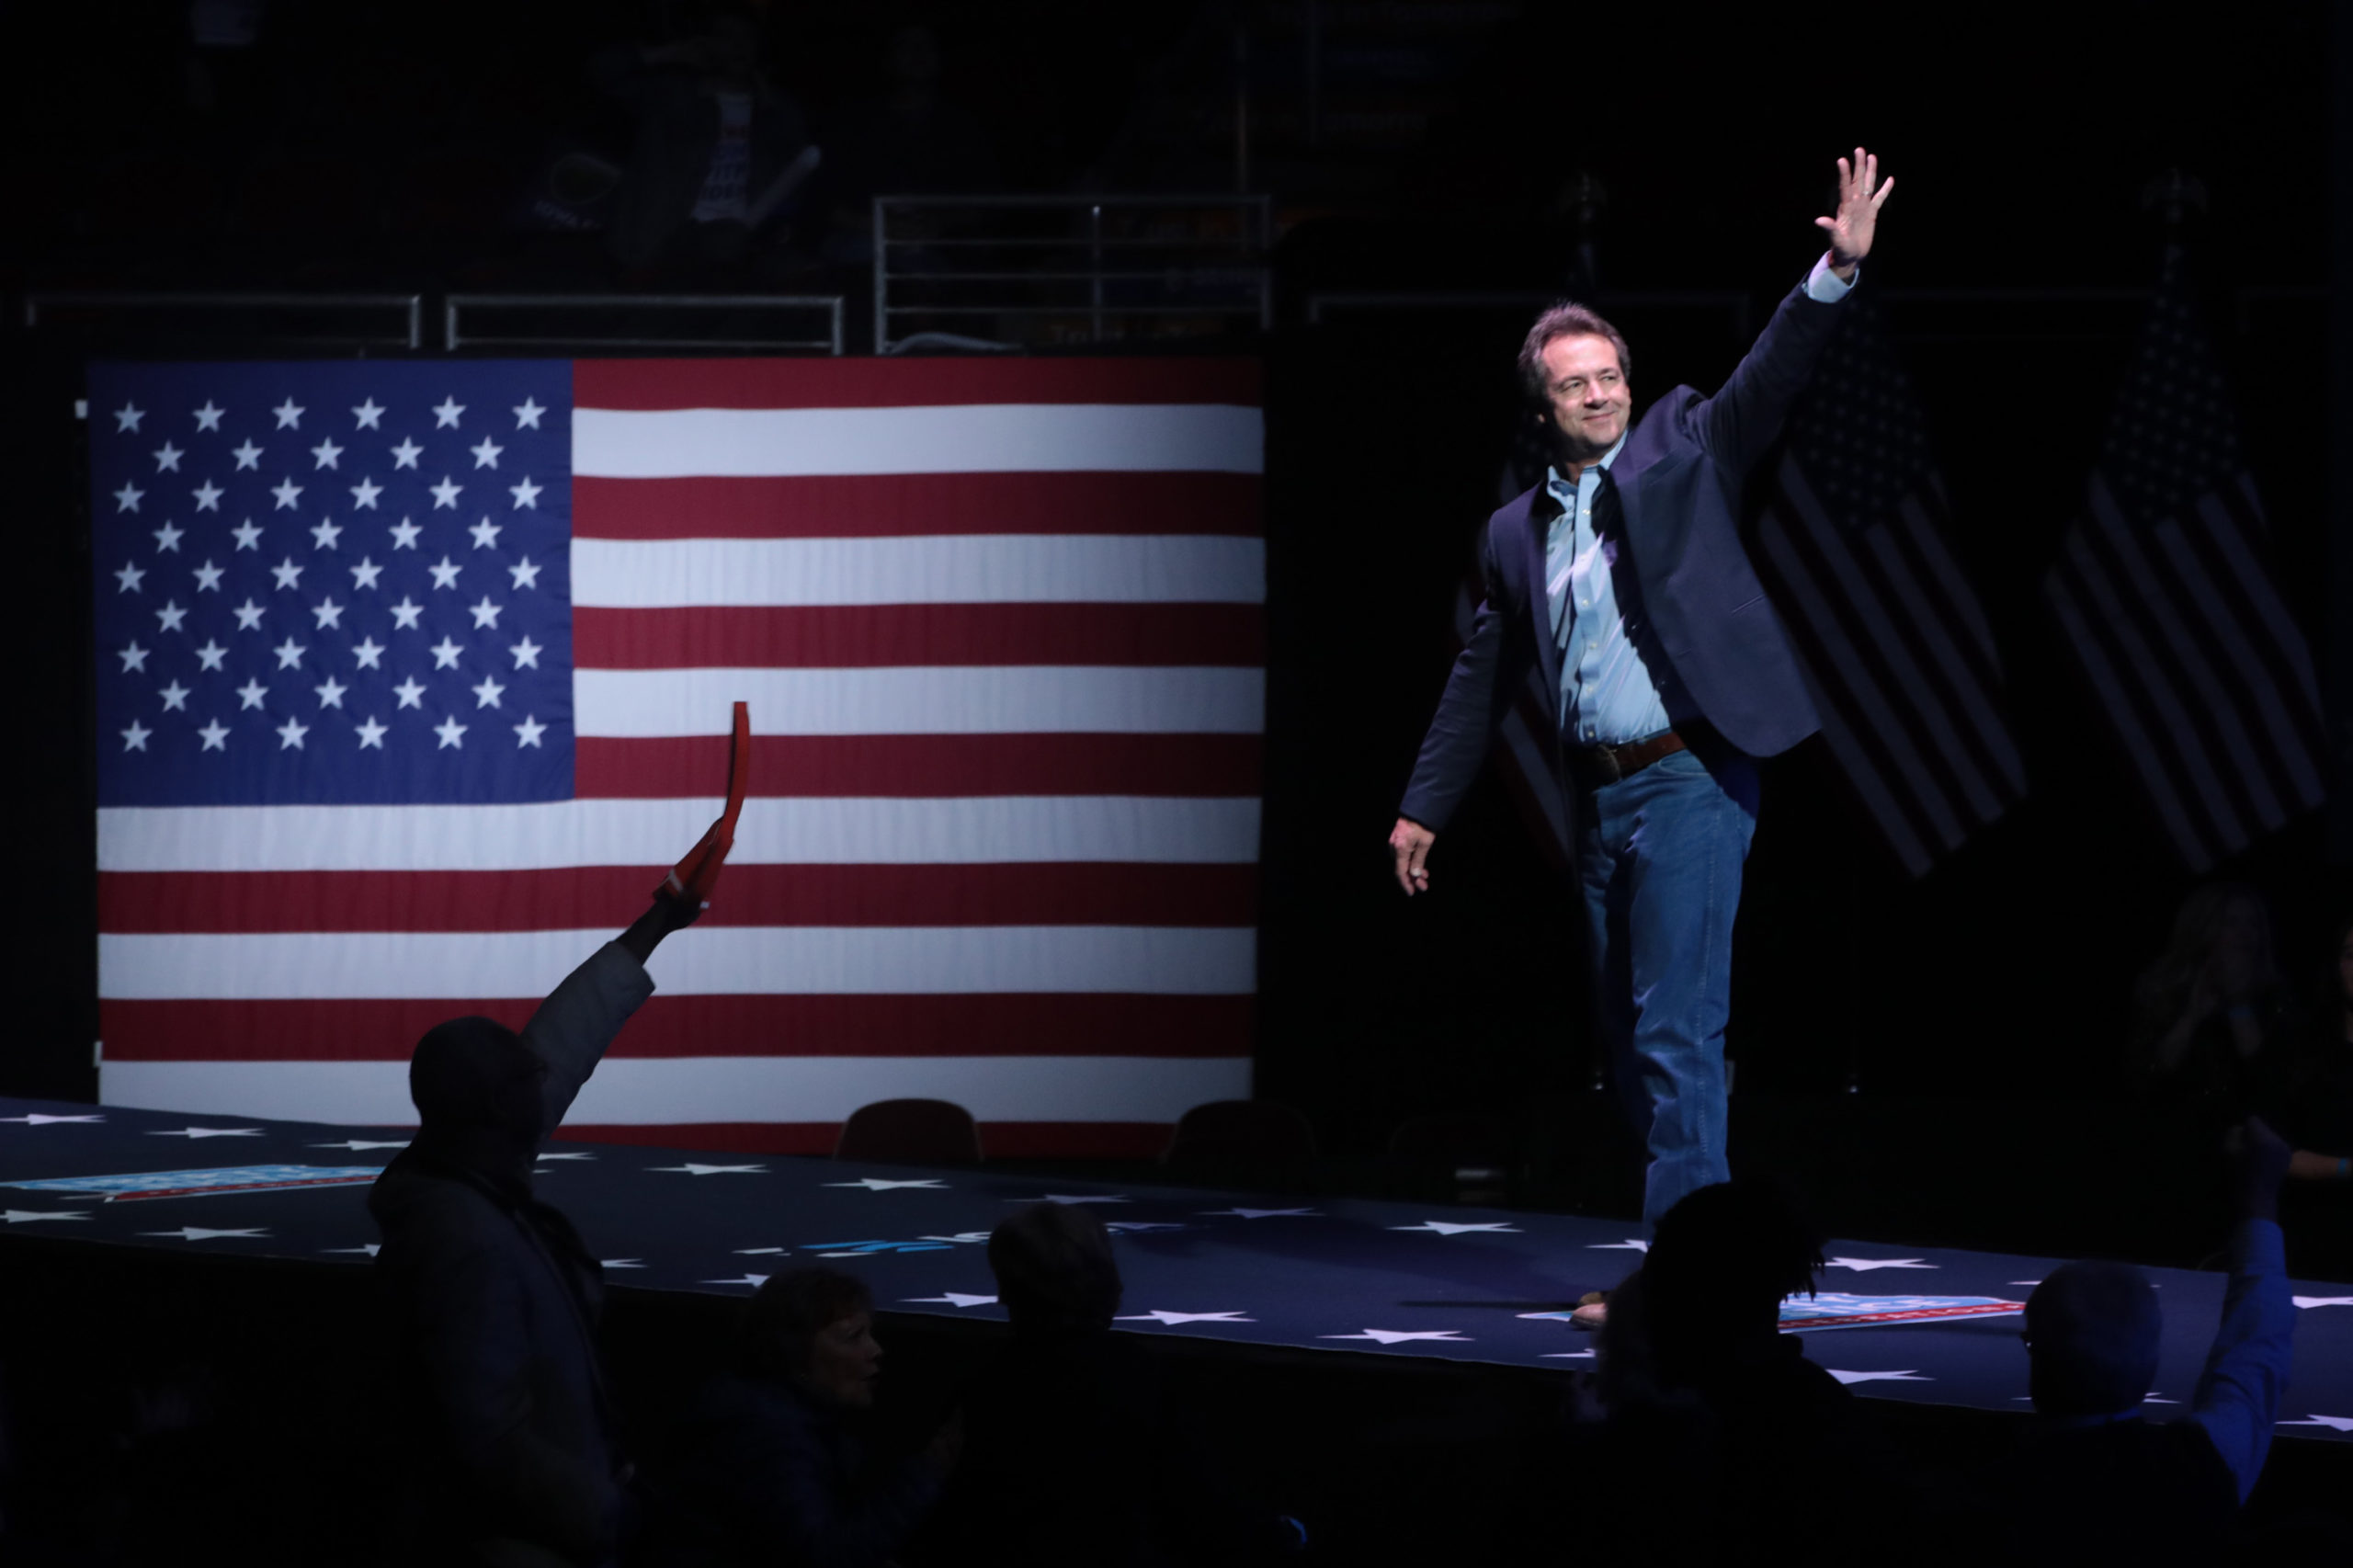 DES MOINES, IOWA - NOVEMBER 01: Democratic presidential candidate Montana governor Steve Bullock speaks at the Liberty and Justice Celebration at the Wells Fargo Arena on November 01, 2019 in Des Moines, Iowa. Fourteen of the candidates hoping to win the Democratic nomination for president are expected to speak at the Celebration. (Photo by Scott Olson/Getty Images)